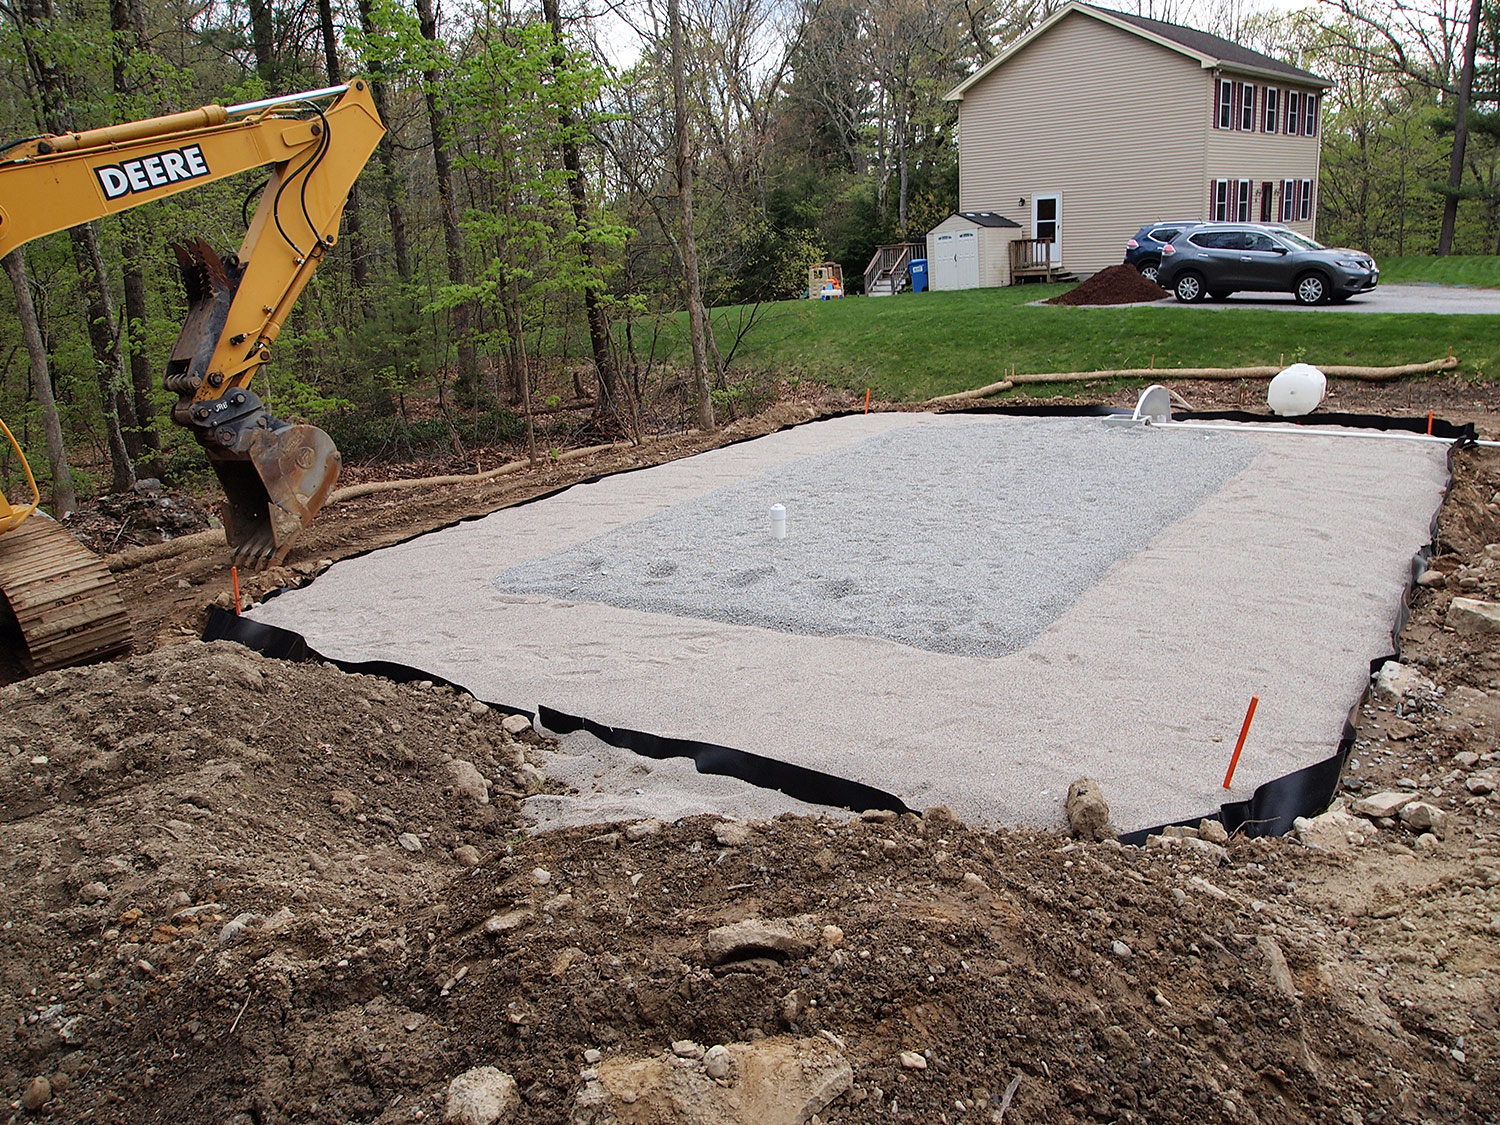 Morse Engineering and Construction Industries - Septic System Inspections, Fiskdale, Sturbridge, MA